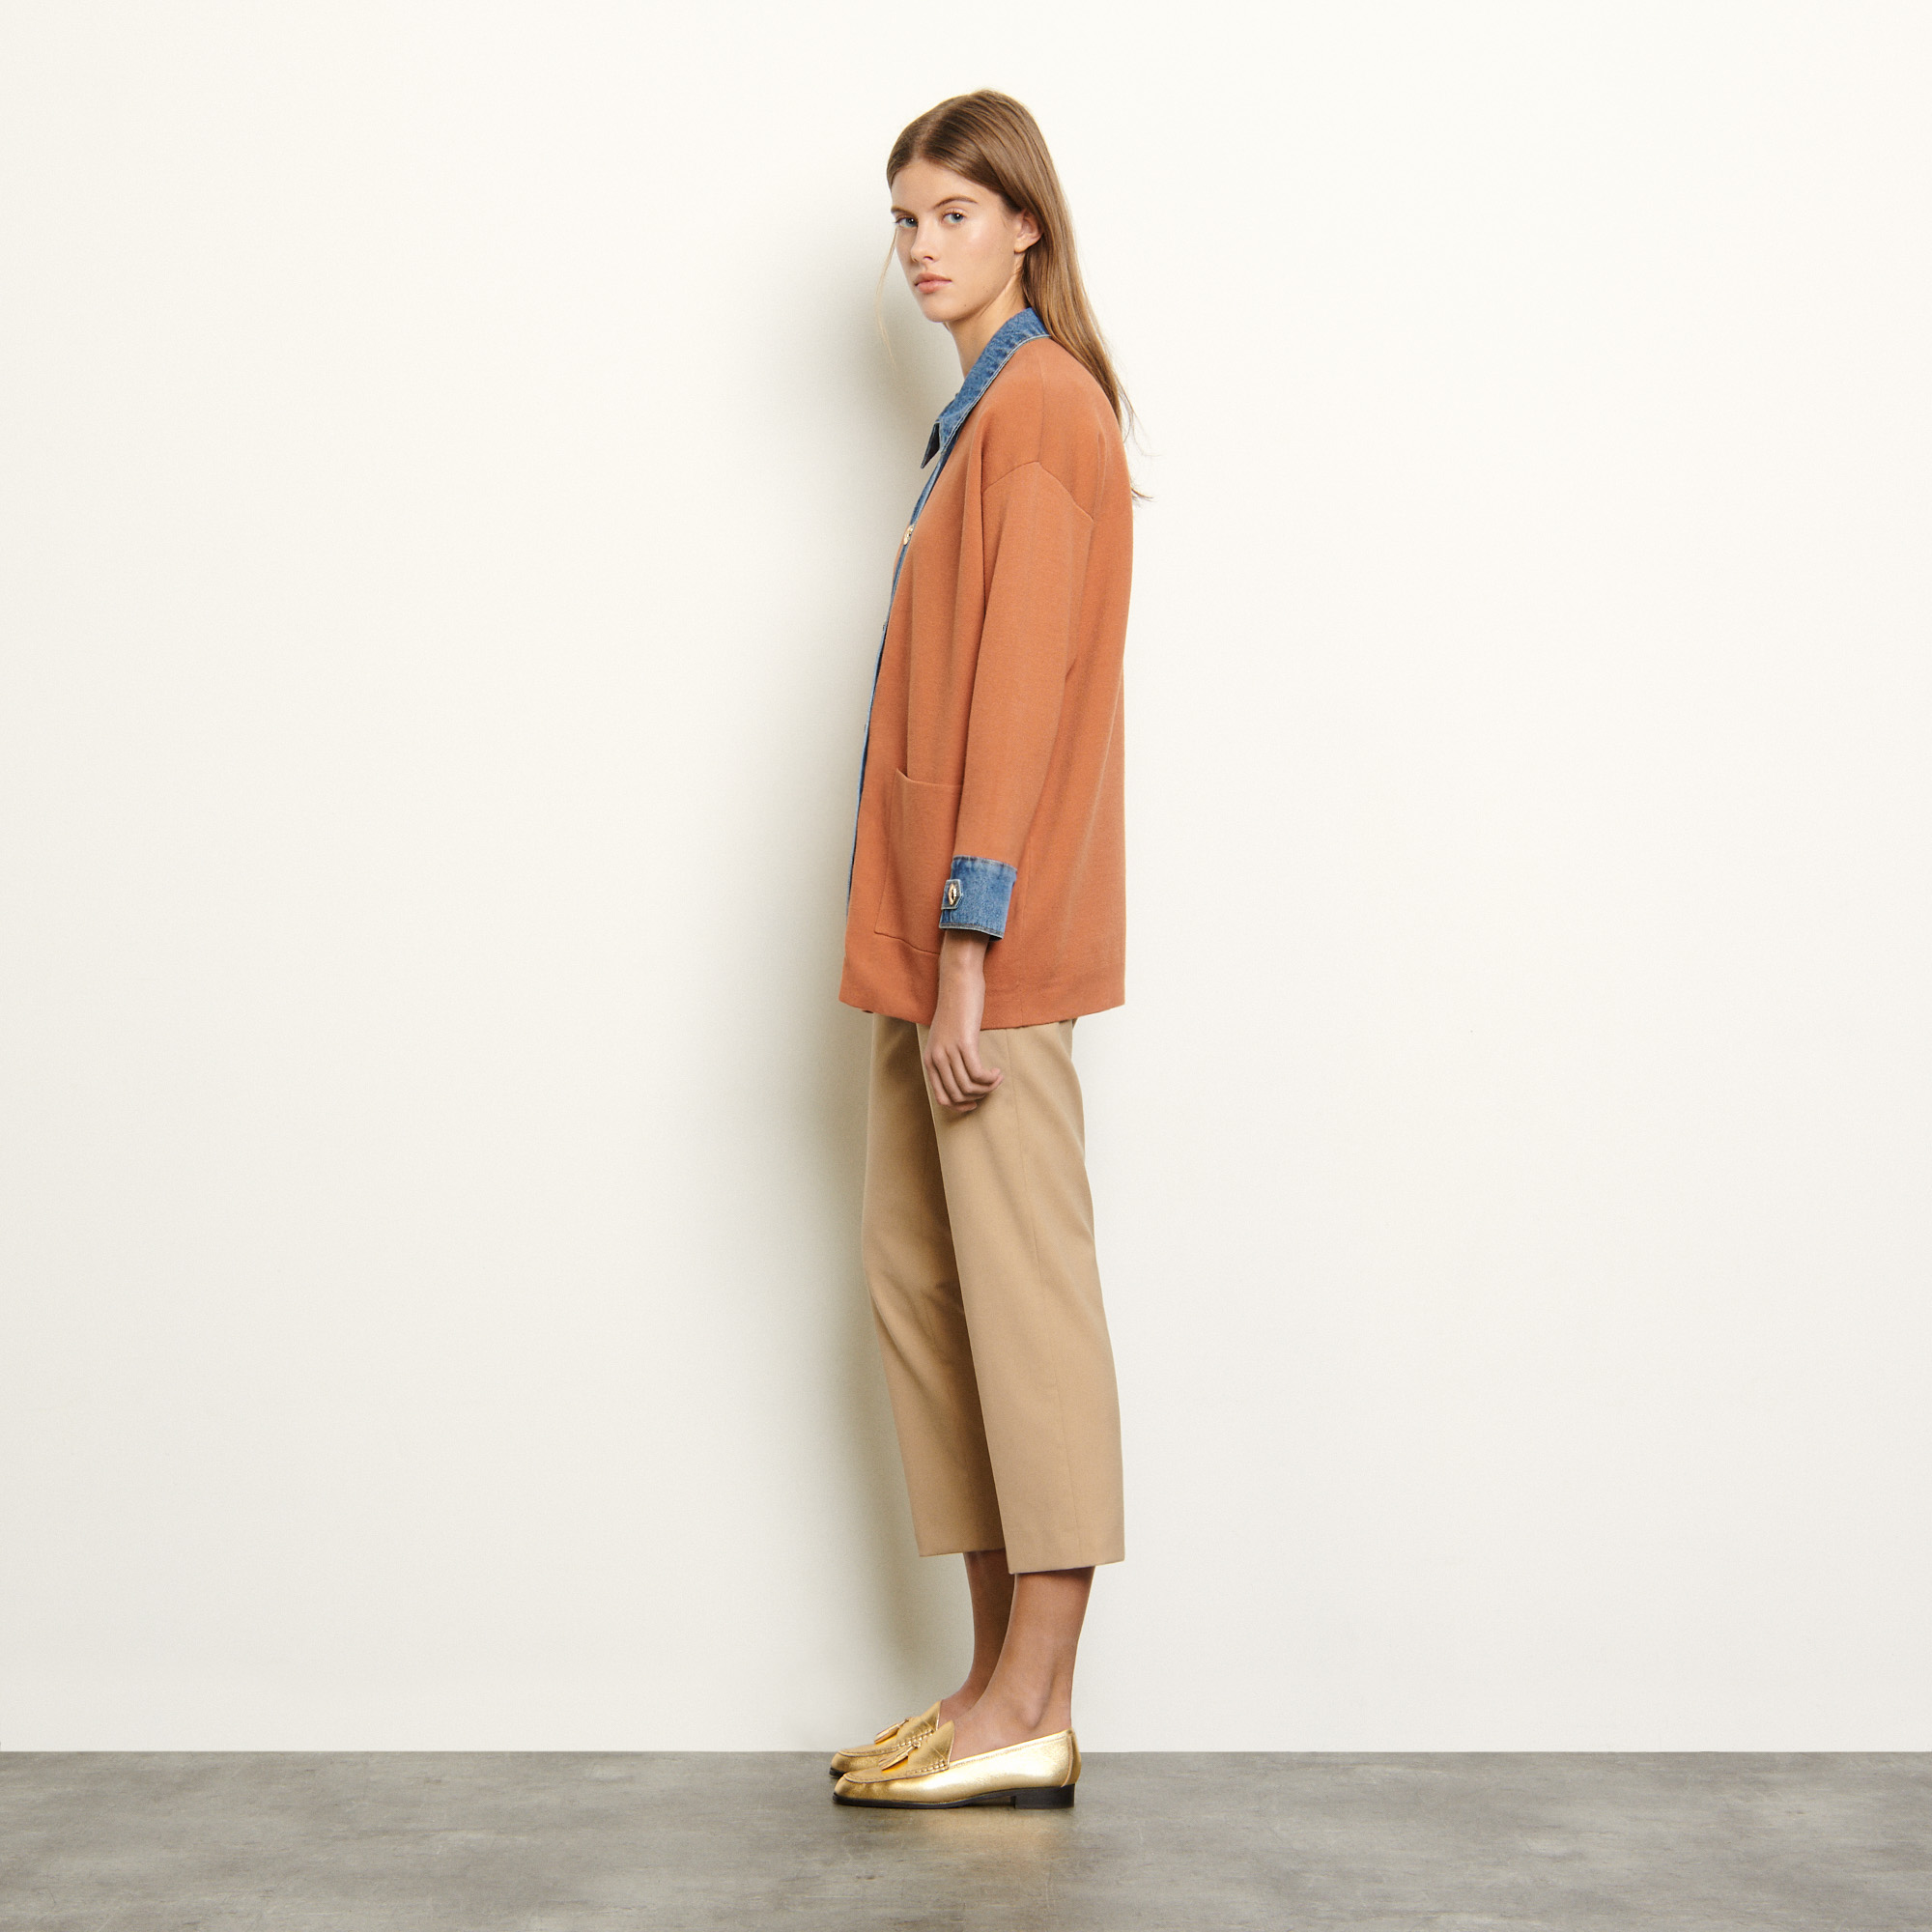 Oversized cardigan with denim inserts  - Brown